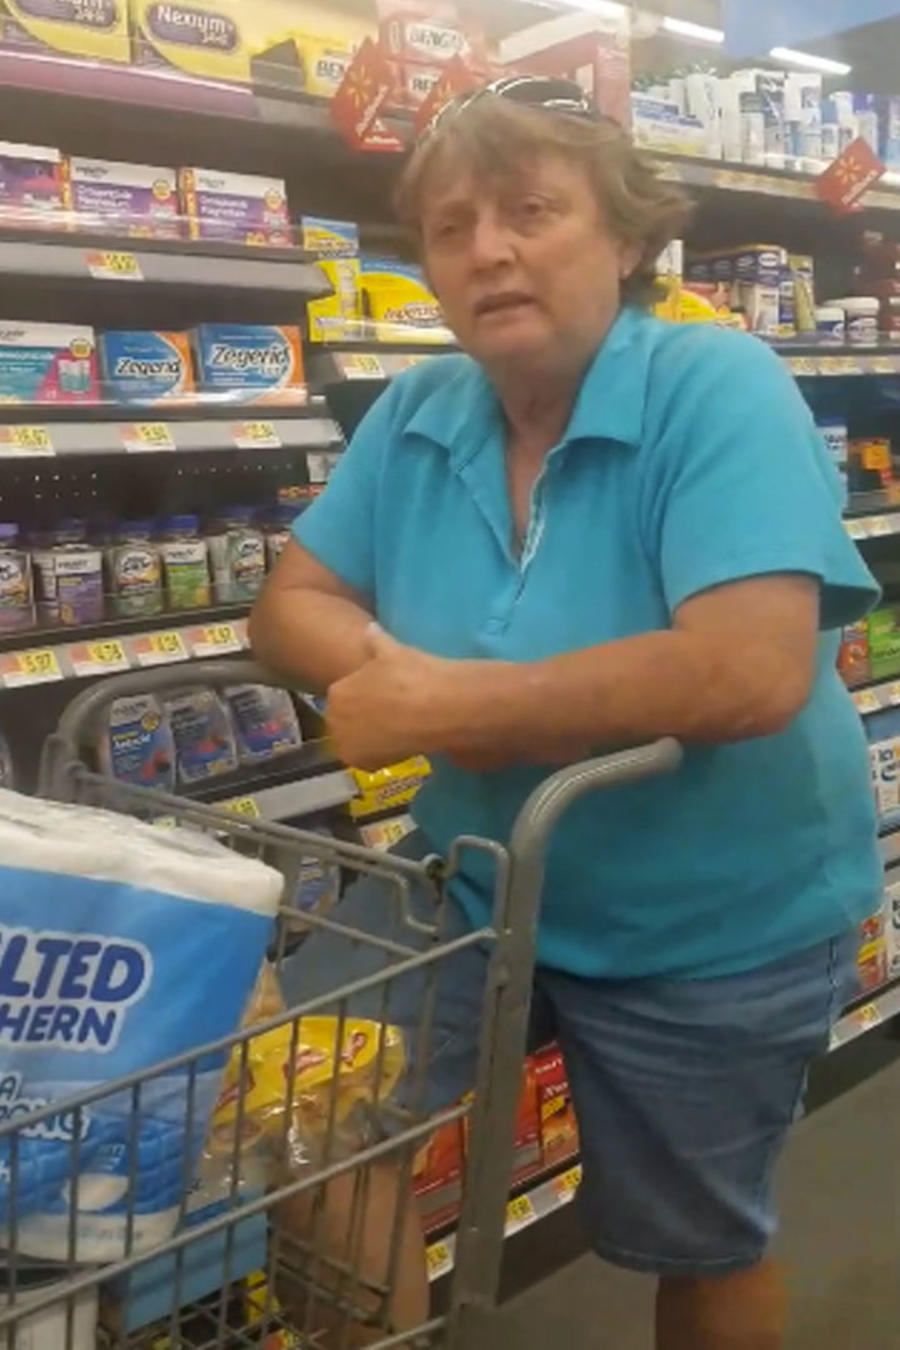 Una mujer insulta a una mexicana en medio de un supermercado (VIDEO)